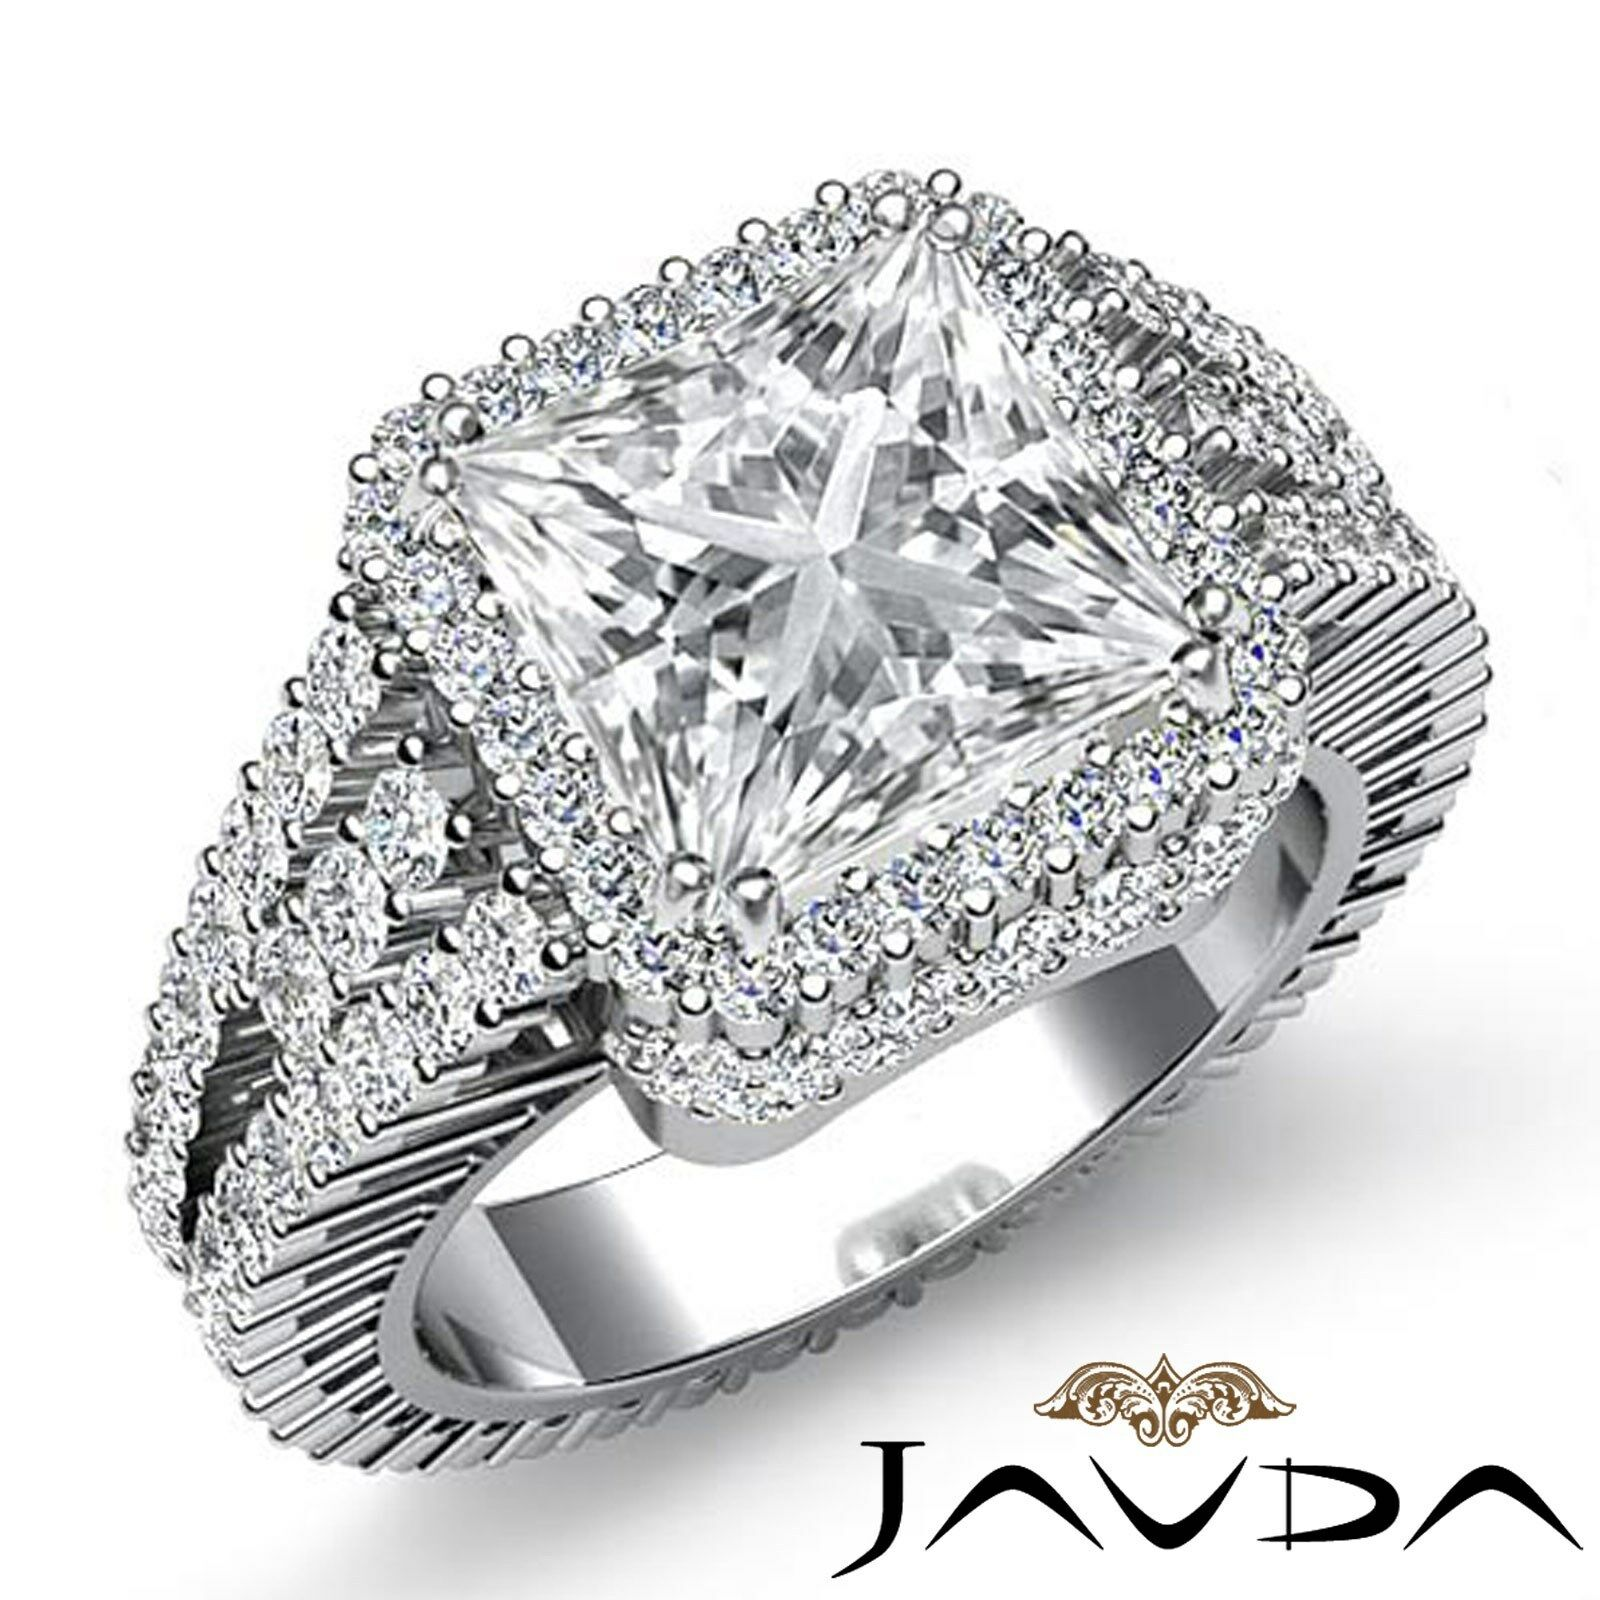 Circa Halo Split Shank Princess Diamond Engagement Prong Set Ring GIA F VS2 4Ct